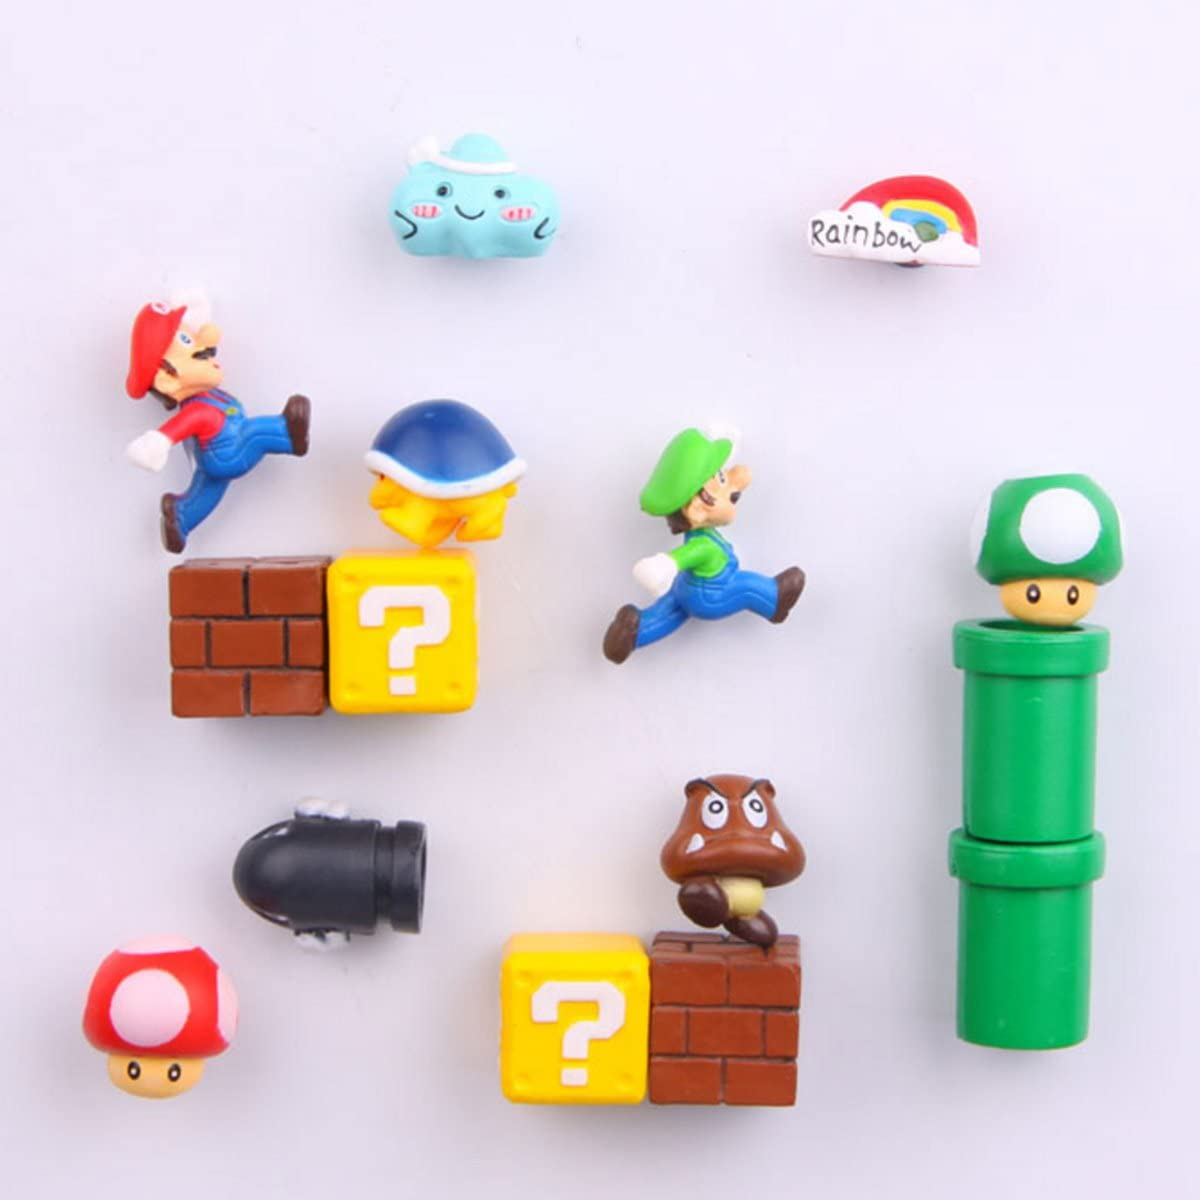 14 Pcs Mario Fridge Magnets Set, Refrigerator Magnets, Office Magnets/Calendar Magnet/Whiteboard Magnets/Mario Decorative Refrigerator Magnets Kitchen Kit